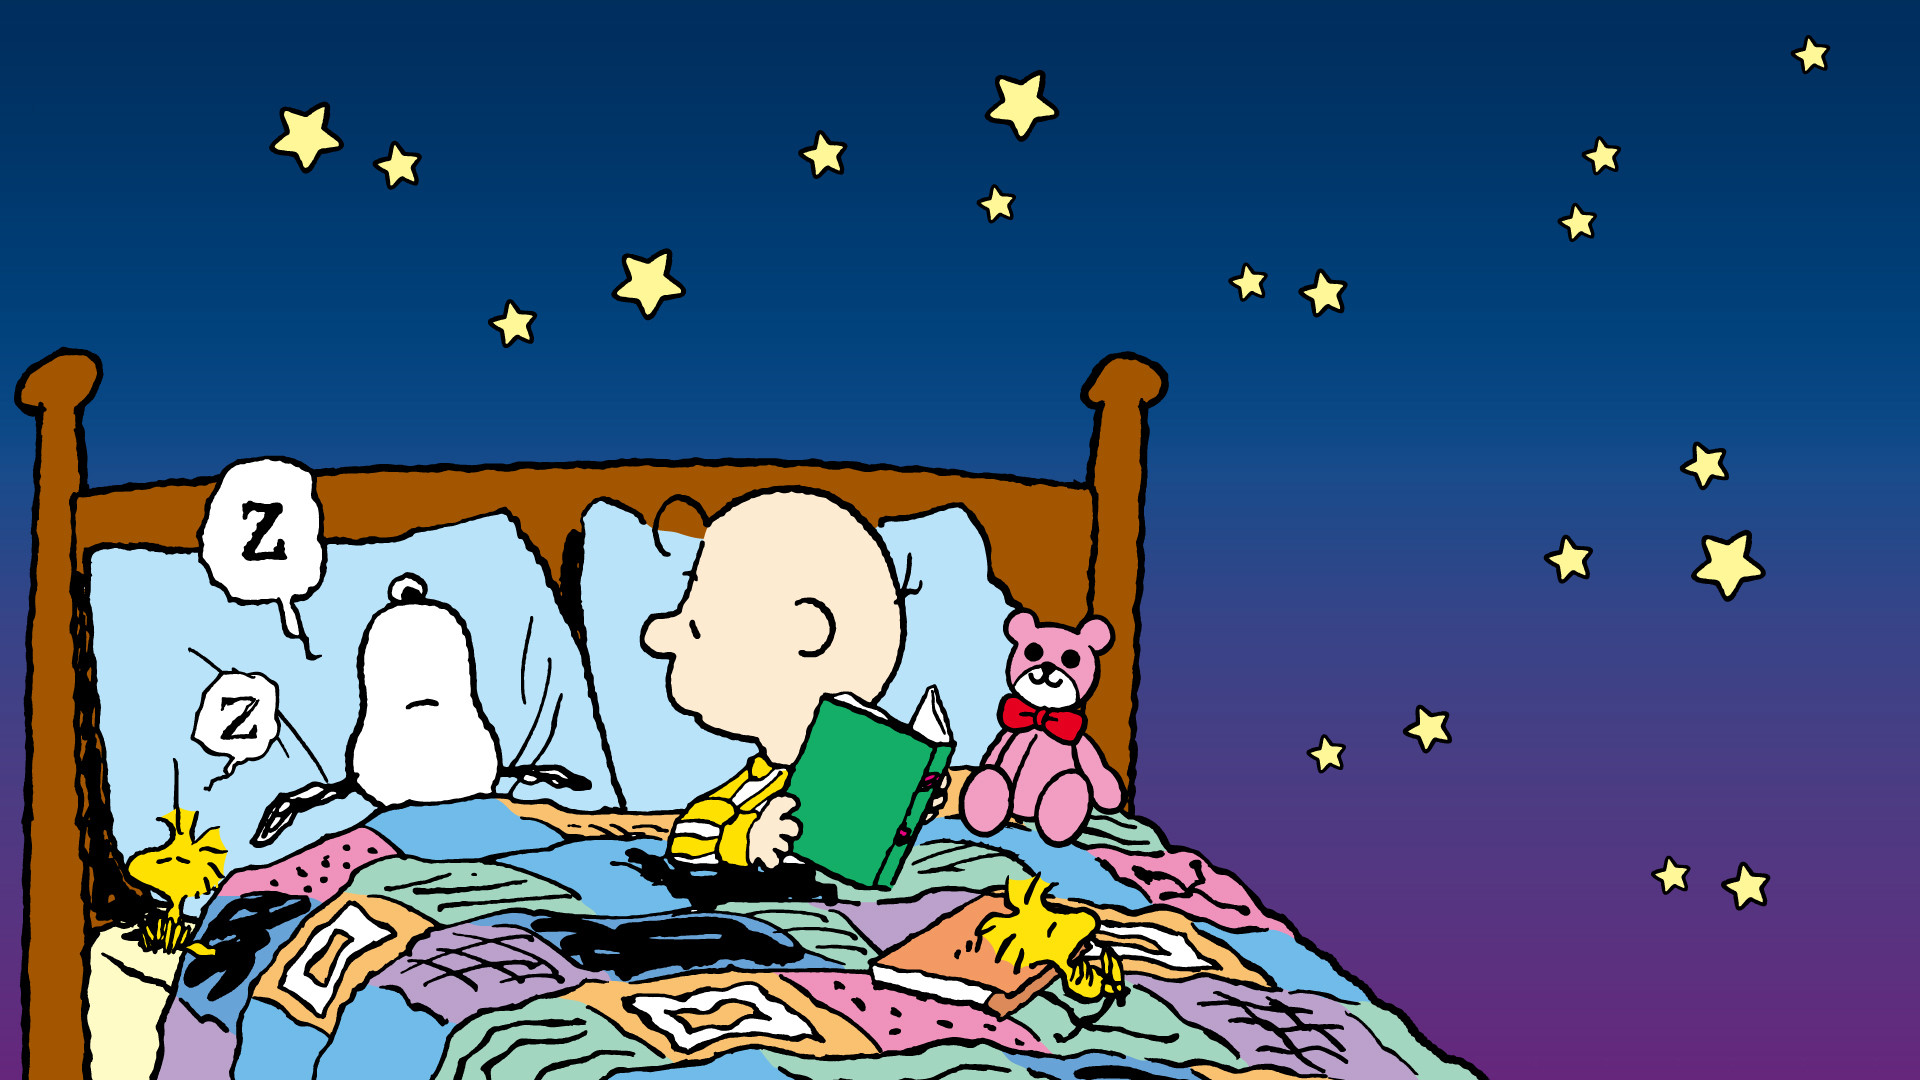 1920x1080 10 best ideas about Snoopy/Peanuts Backgrounds on Pinterest | The peanuts,  Search and Snoopy sleeping